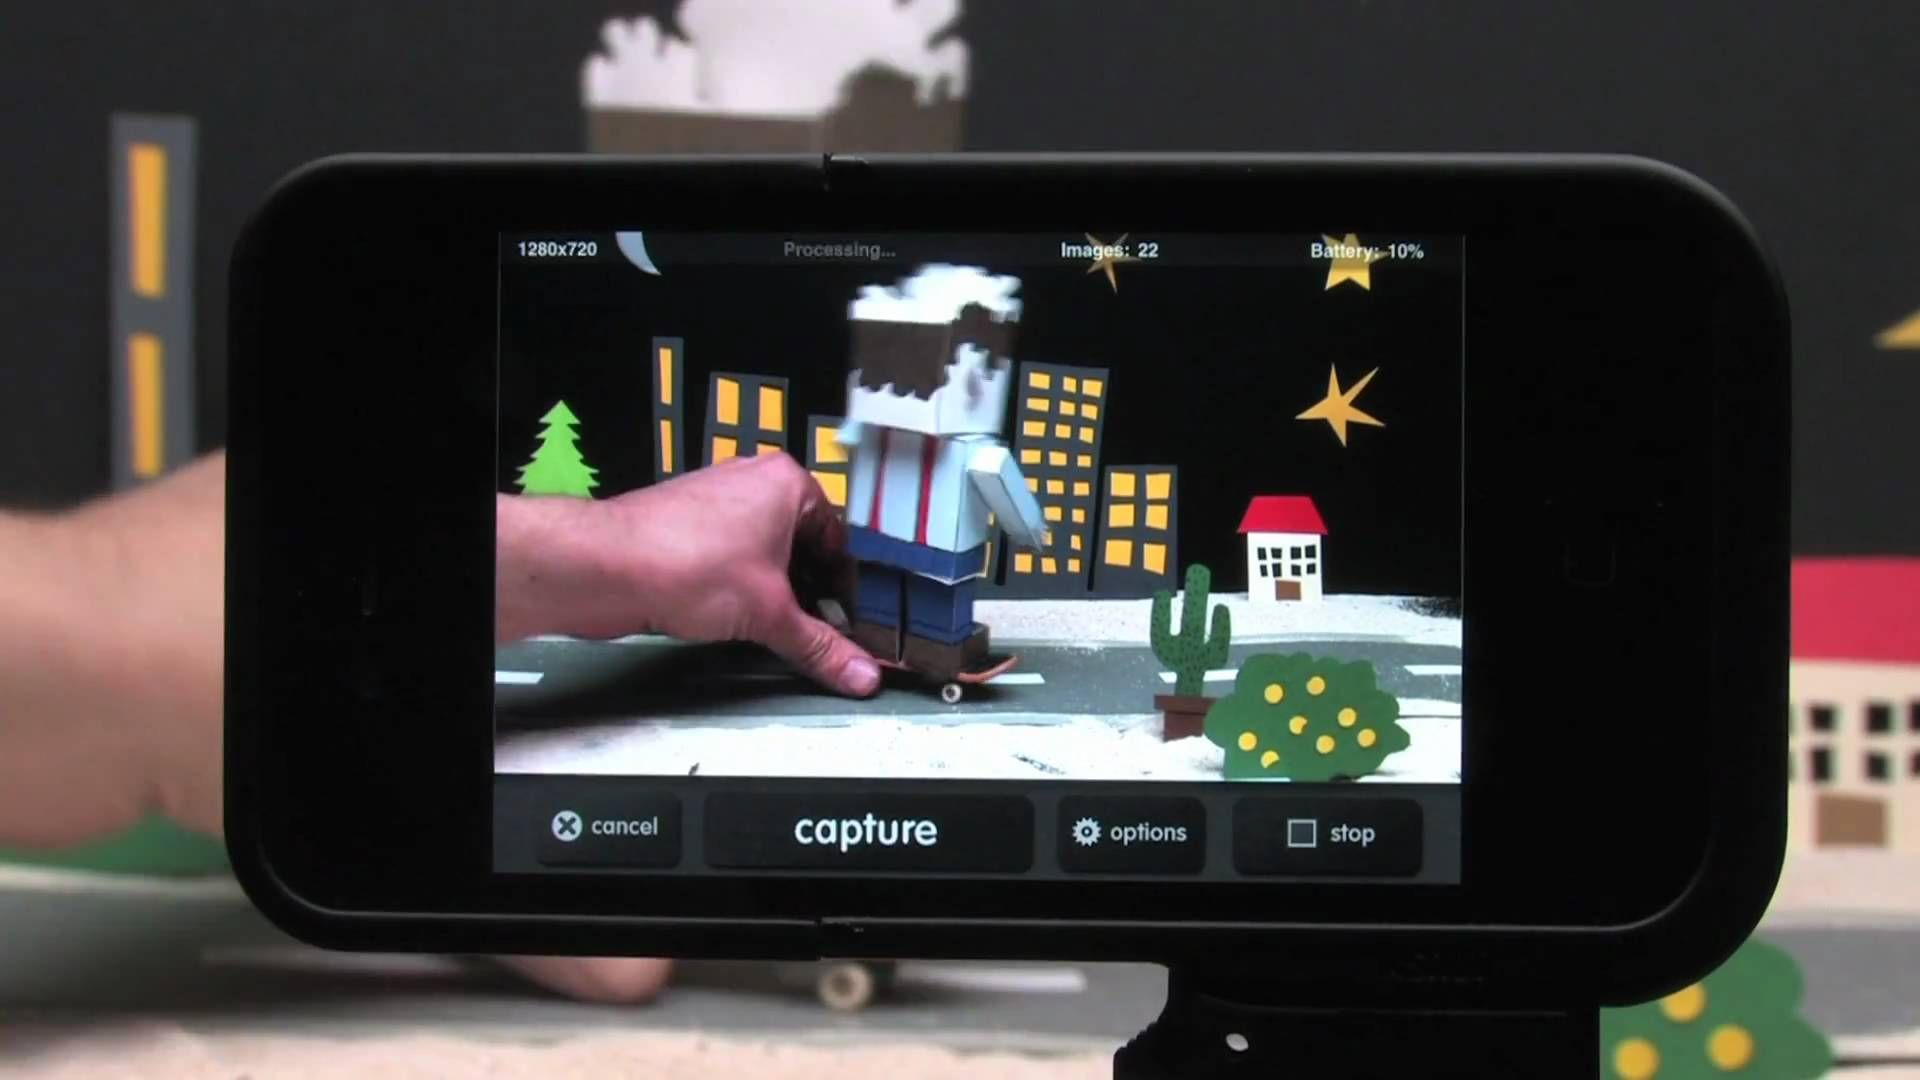 iMotion is a free iPad/iPhone app for making stop motion